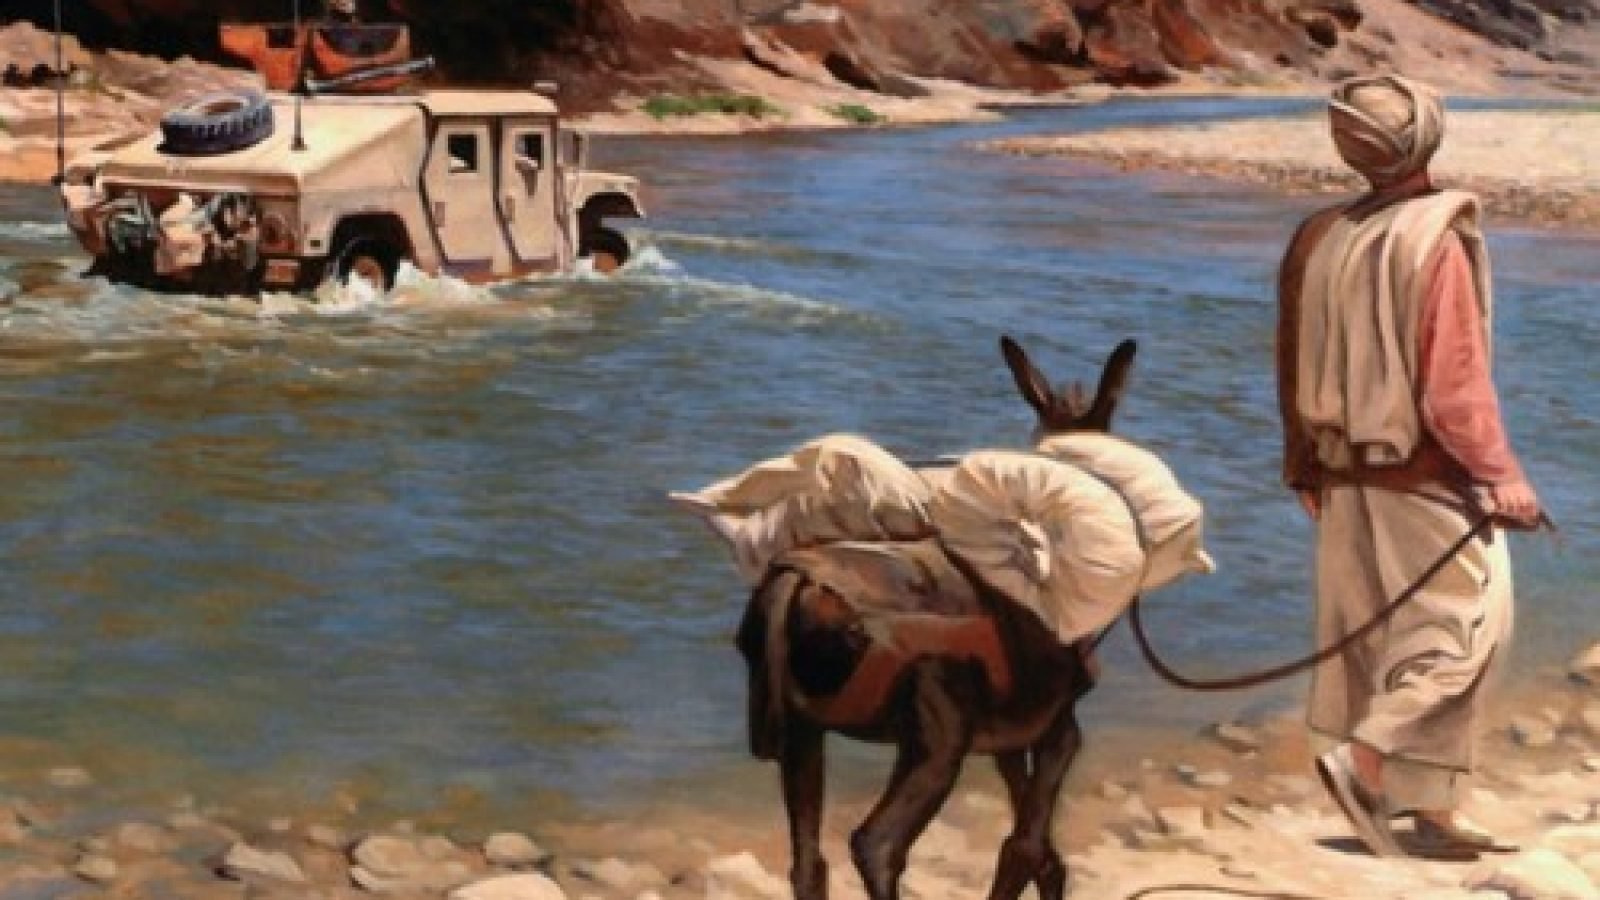 Logo of the Small Wars Journal depicting a painted scene of a man leading a donkey in the foreground, with an amphibious military vehicle driving through a stream in the background